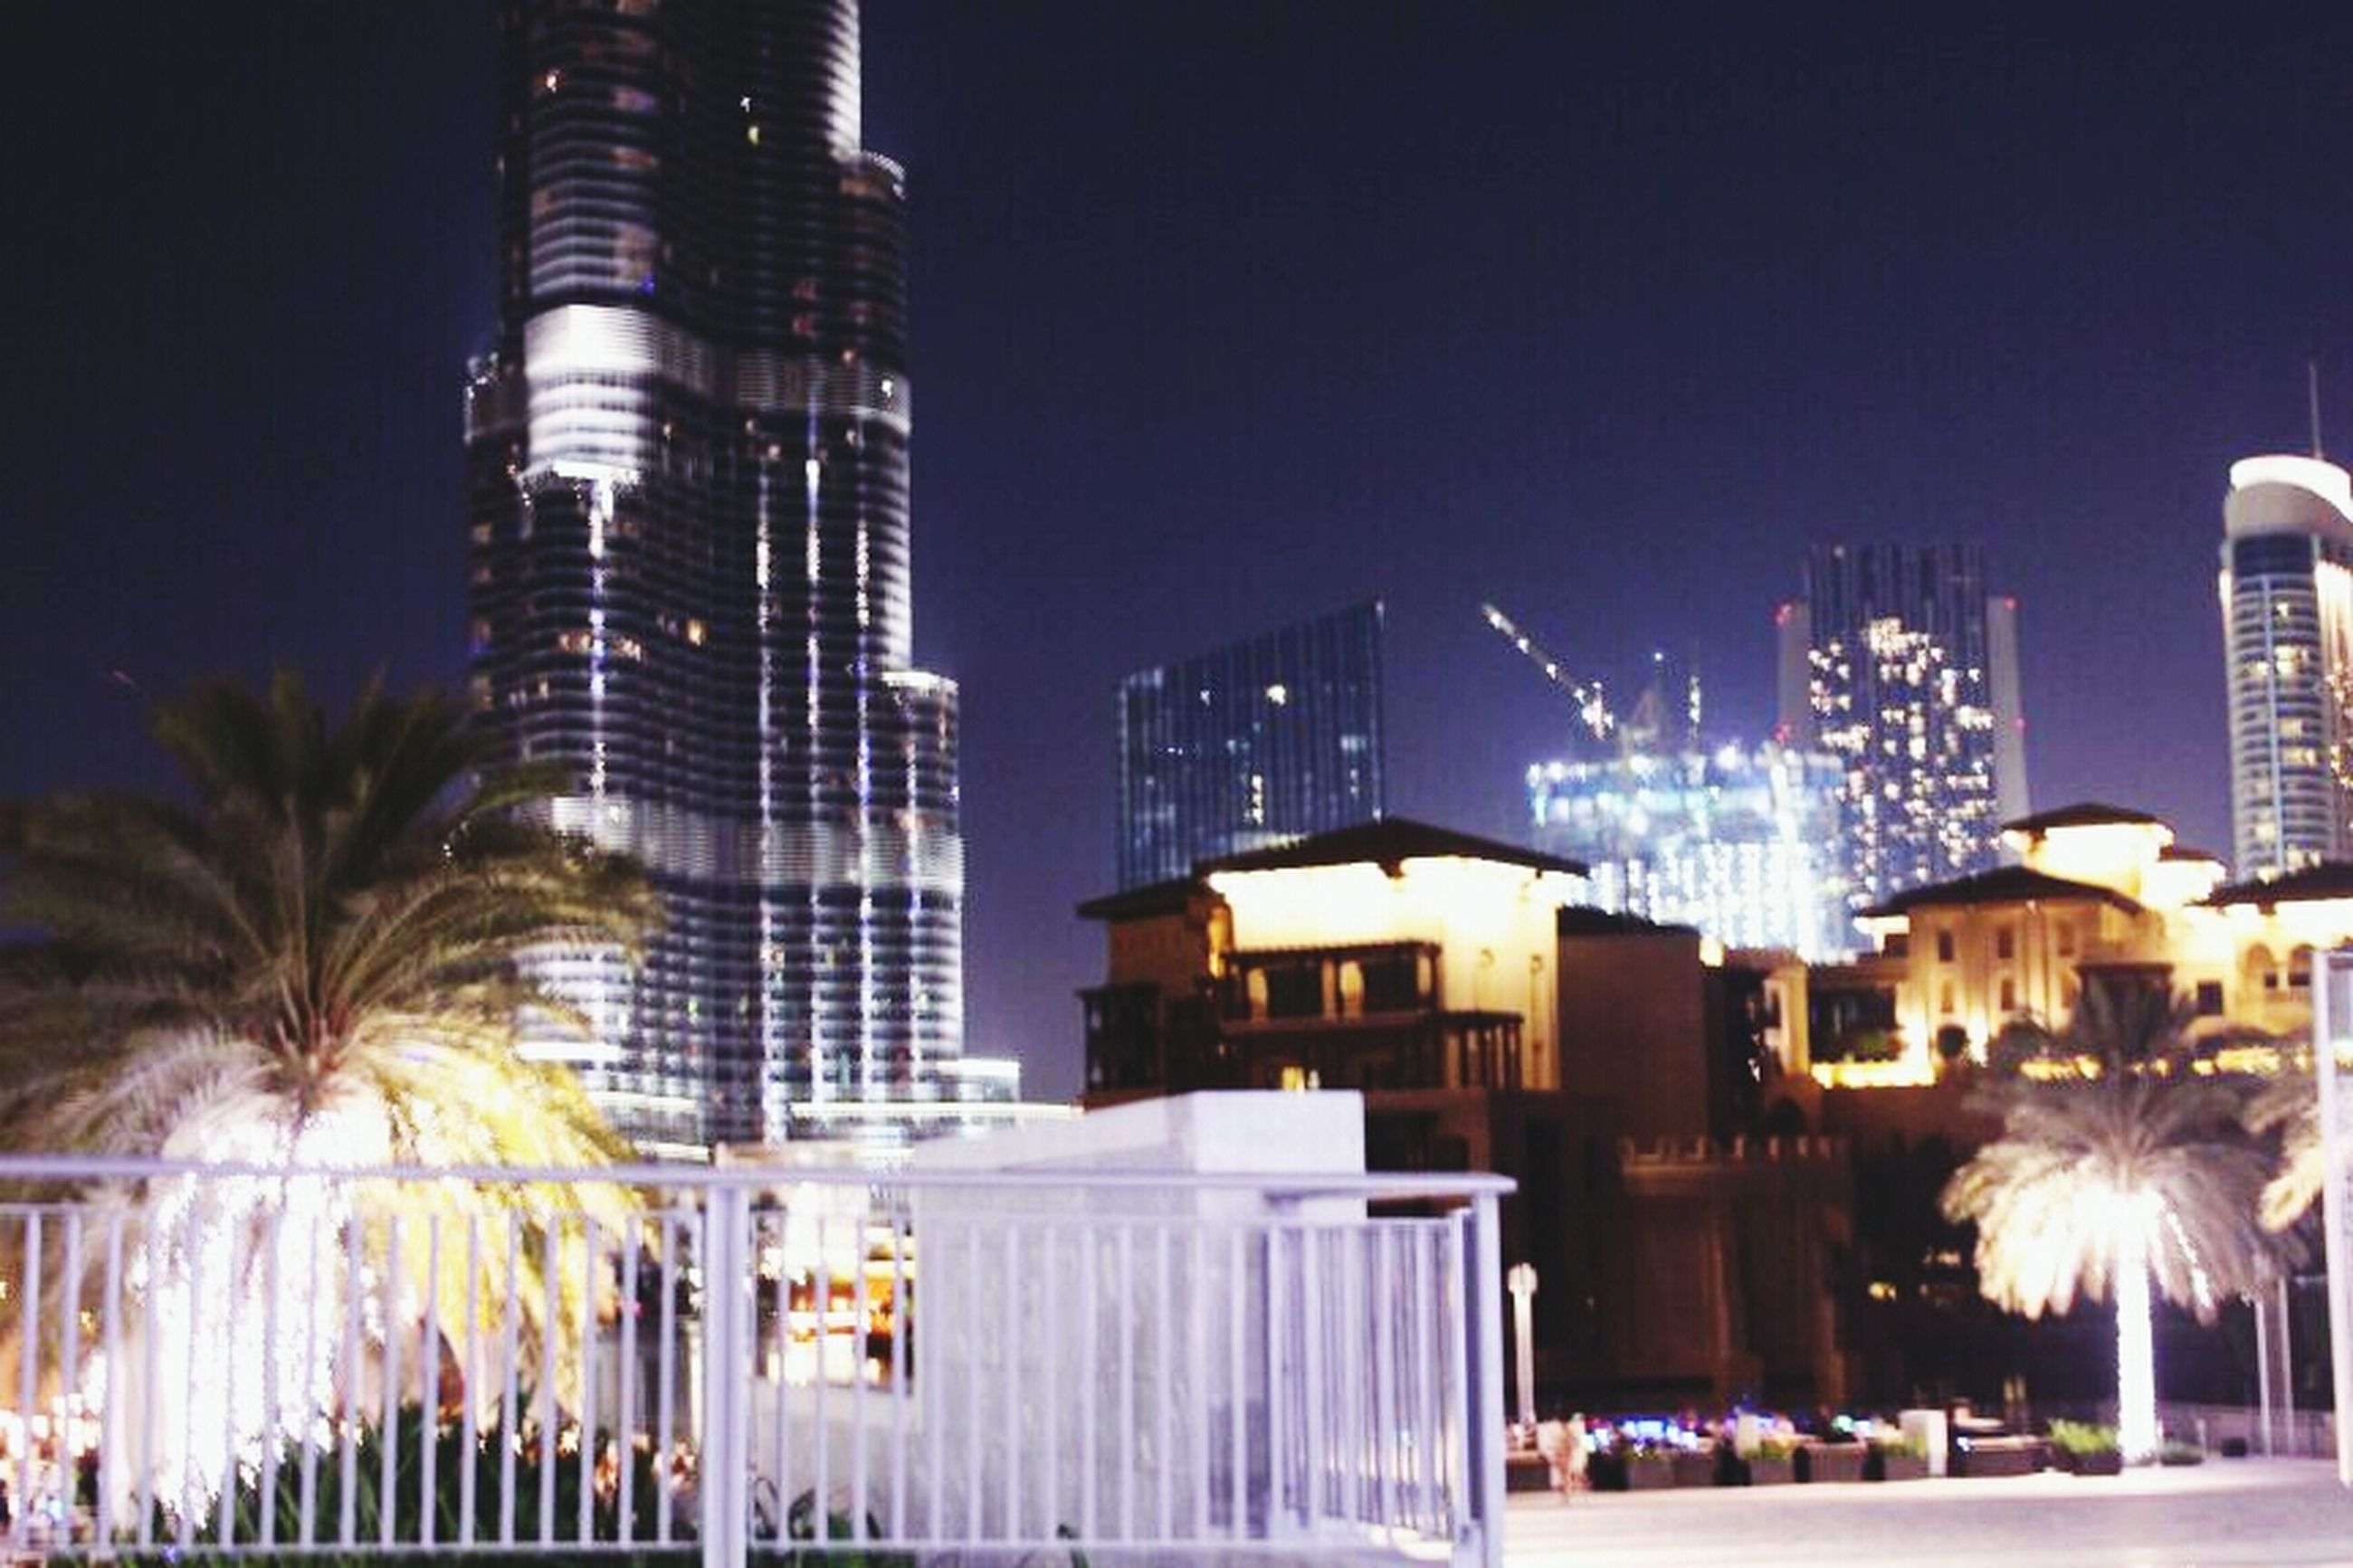 building exterior, architecture, built structure, illuminated, city, night, modern, skyscraper, clear sky, building, residential building, tall - high, office building, residential structure, cityscape, tower, blue, lighting equipment, low angle view, city life